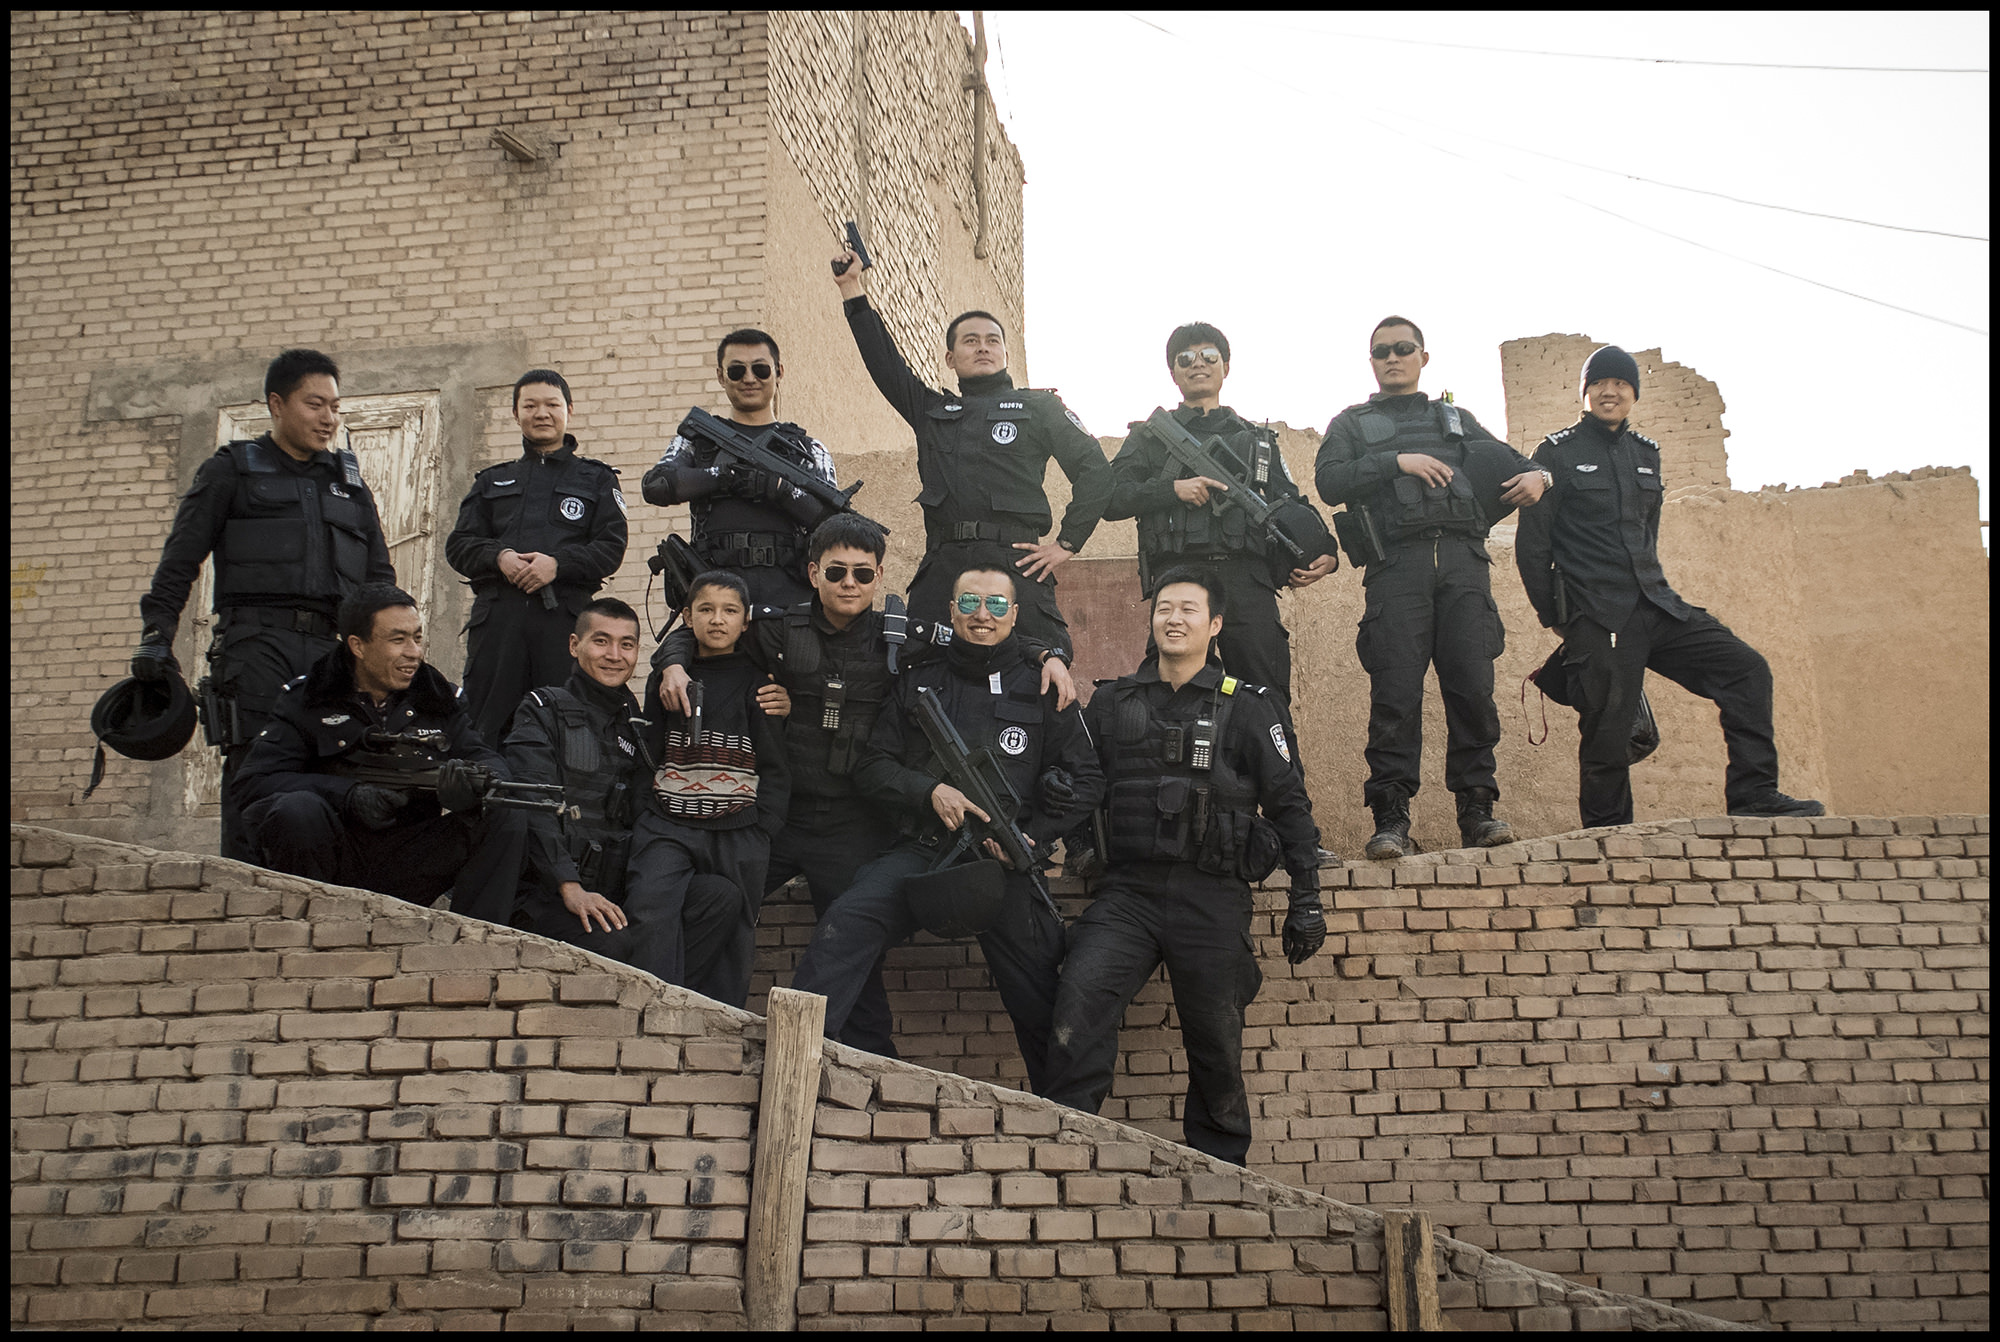 Digital Patrik Wallner Kashgar Mohammed and Han Police LOWQ 2000P